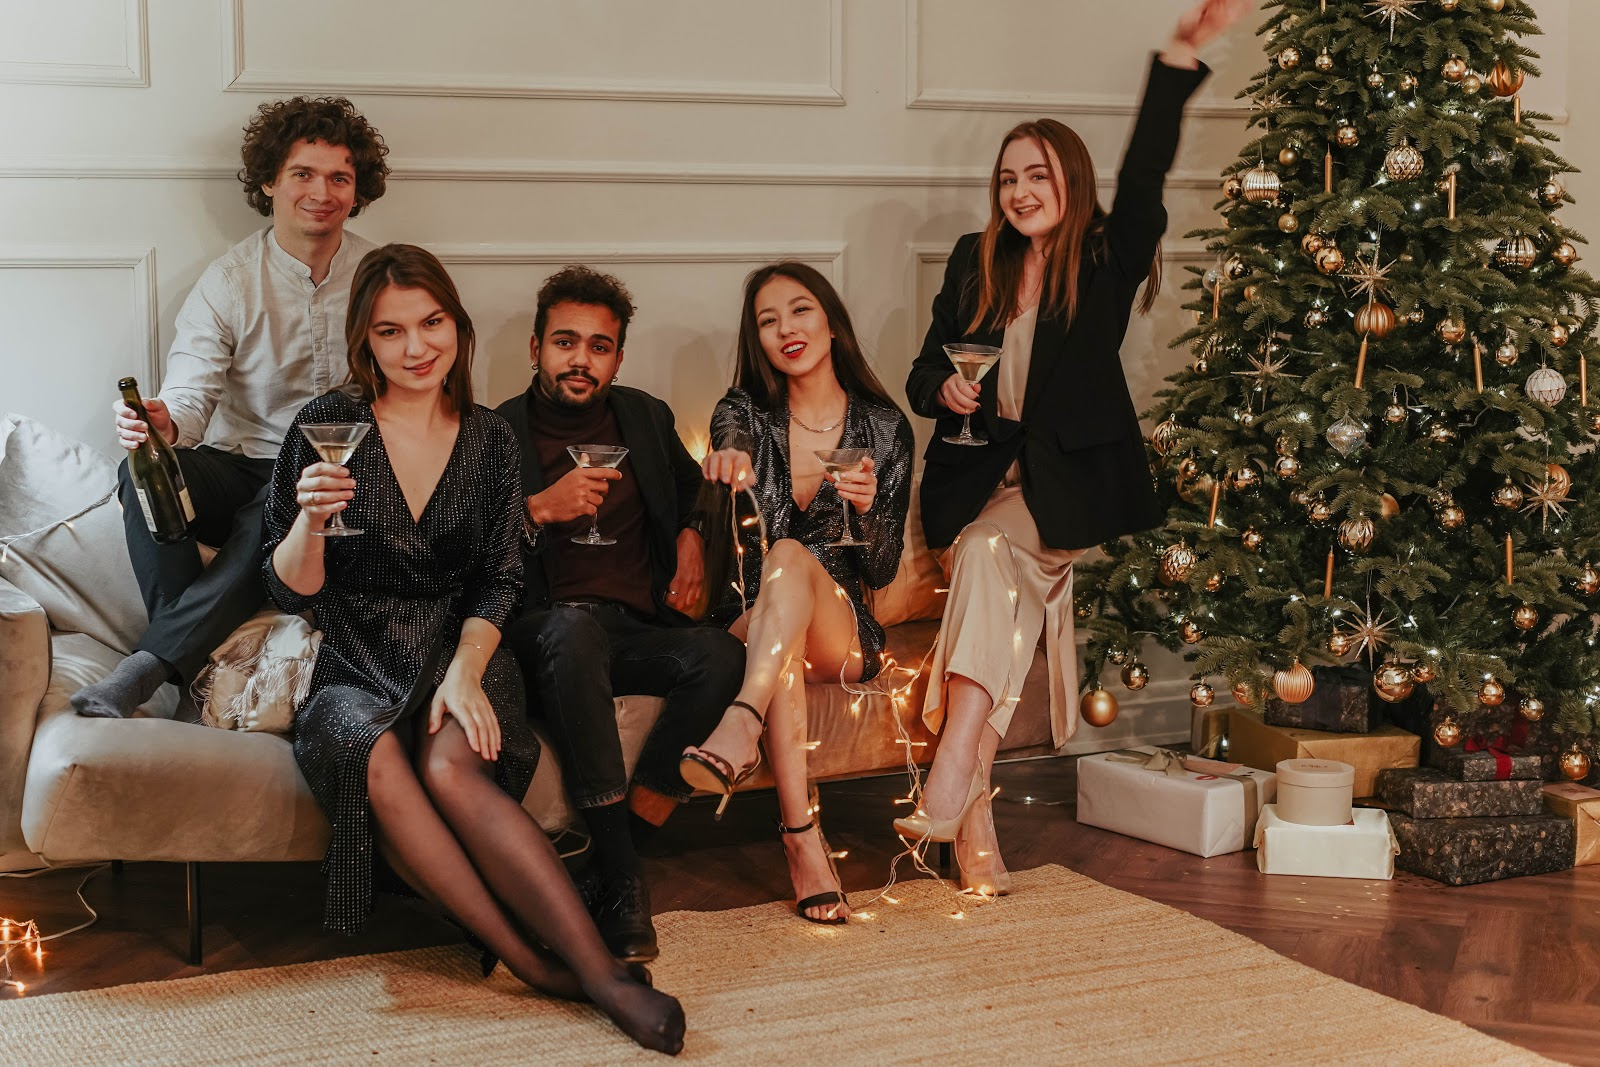 five people drinking wine and celebrating next to a Christmas tree